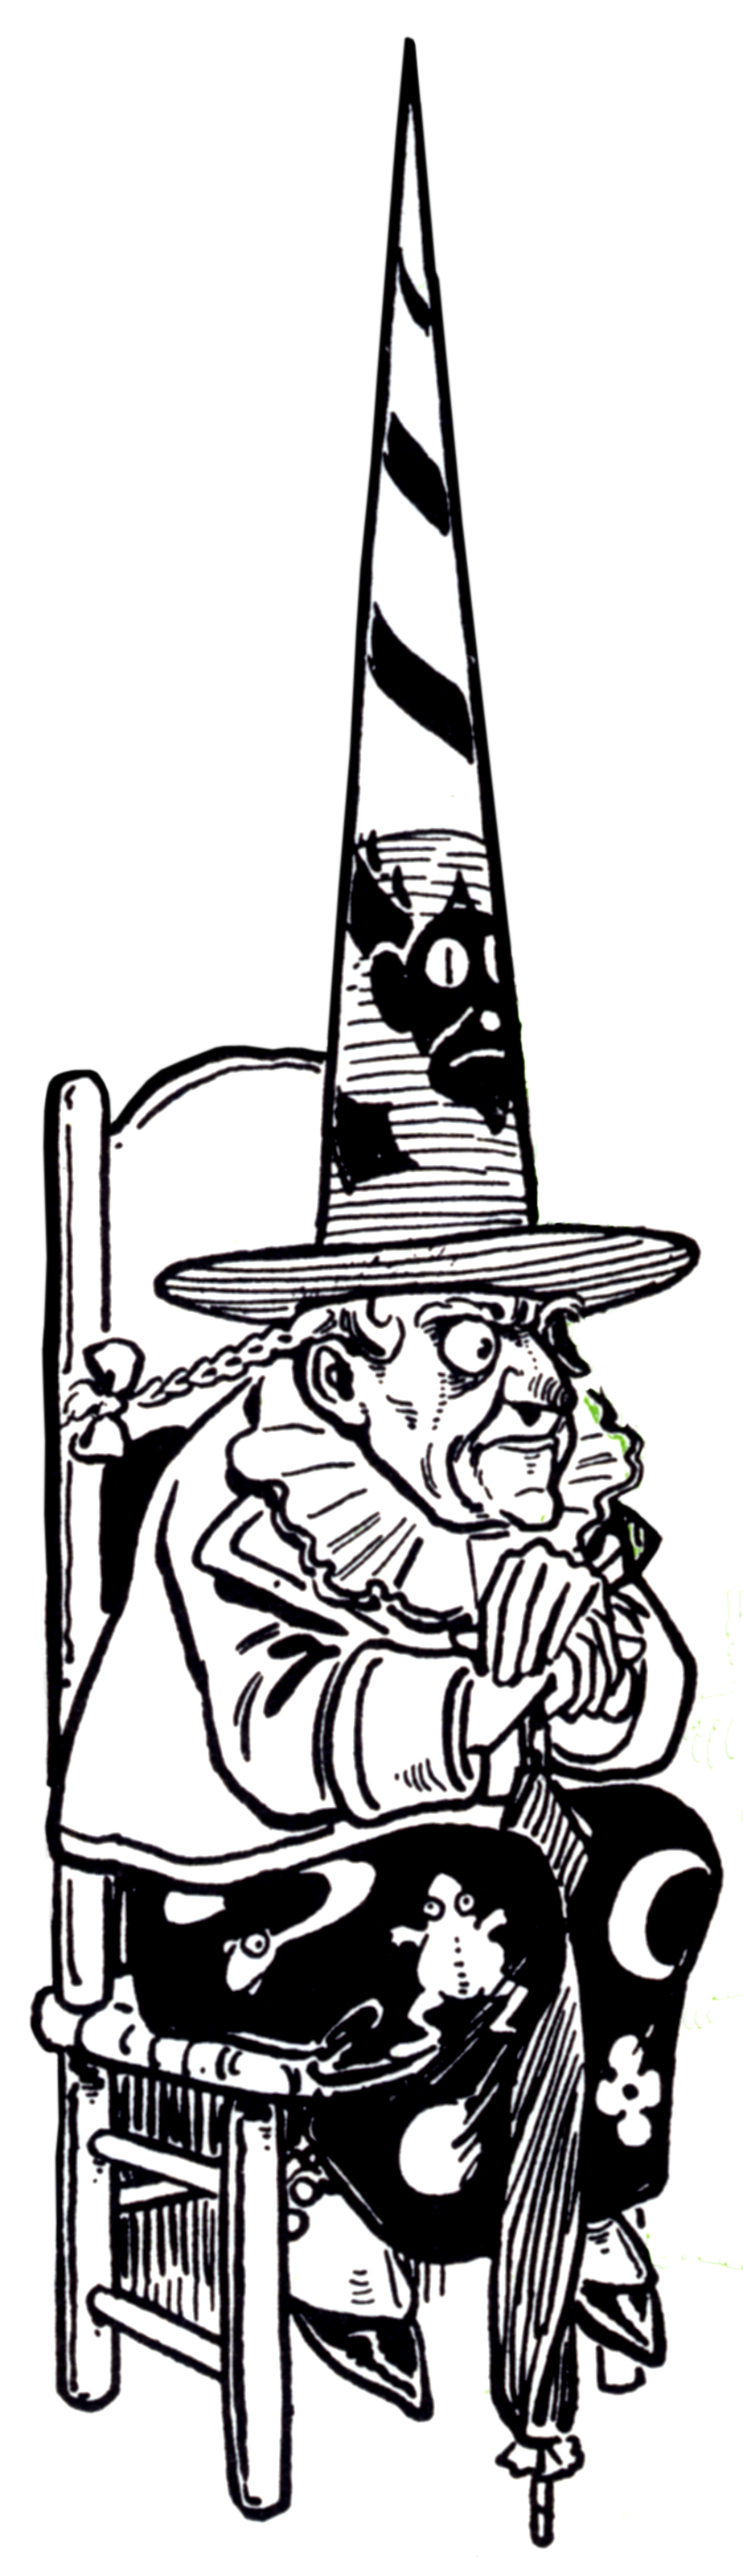 Why Did The Wicked Witch Melt John C Wrights Journal